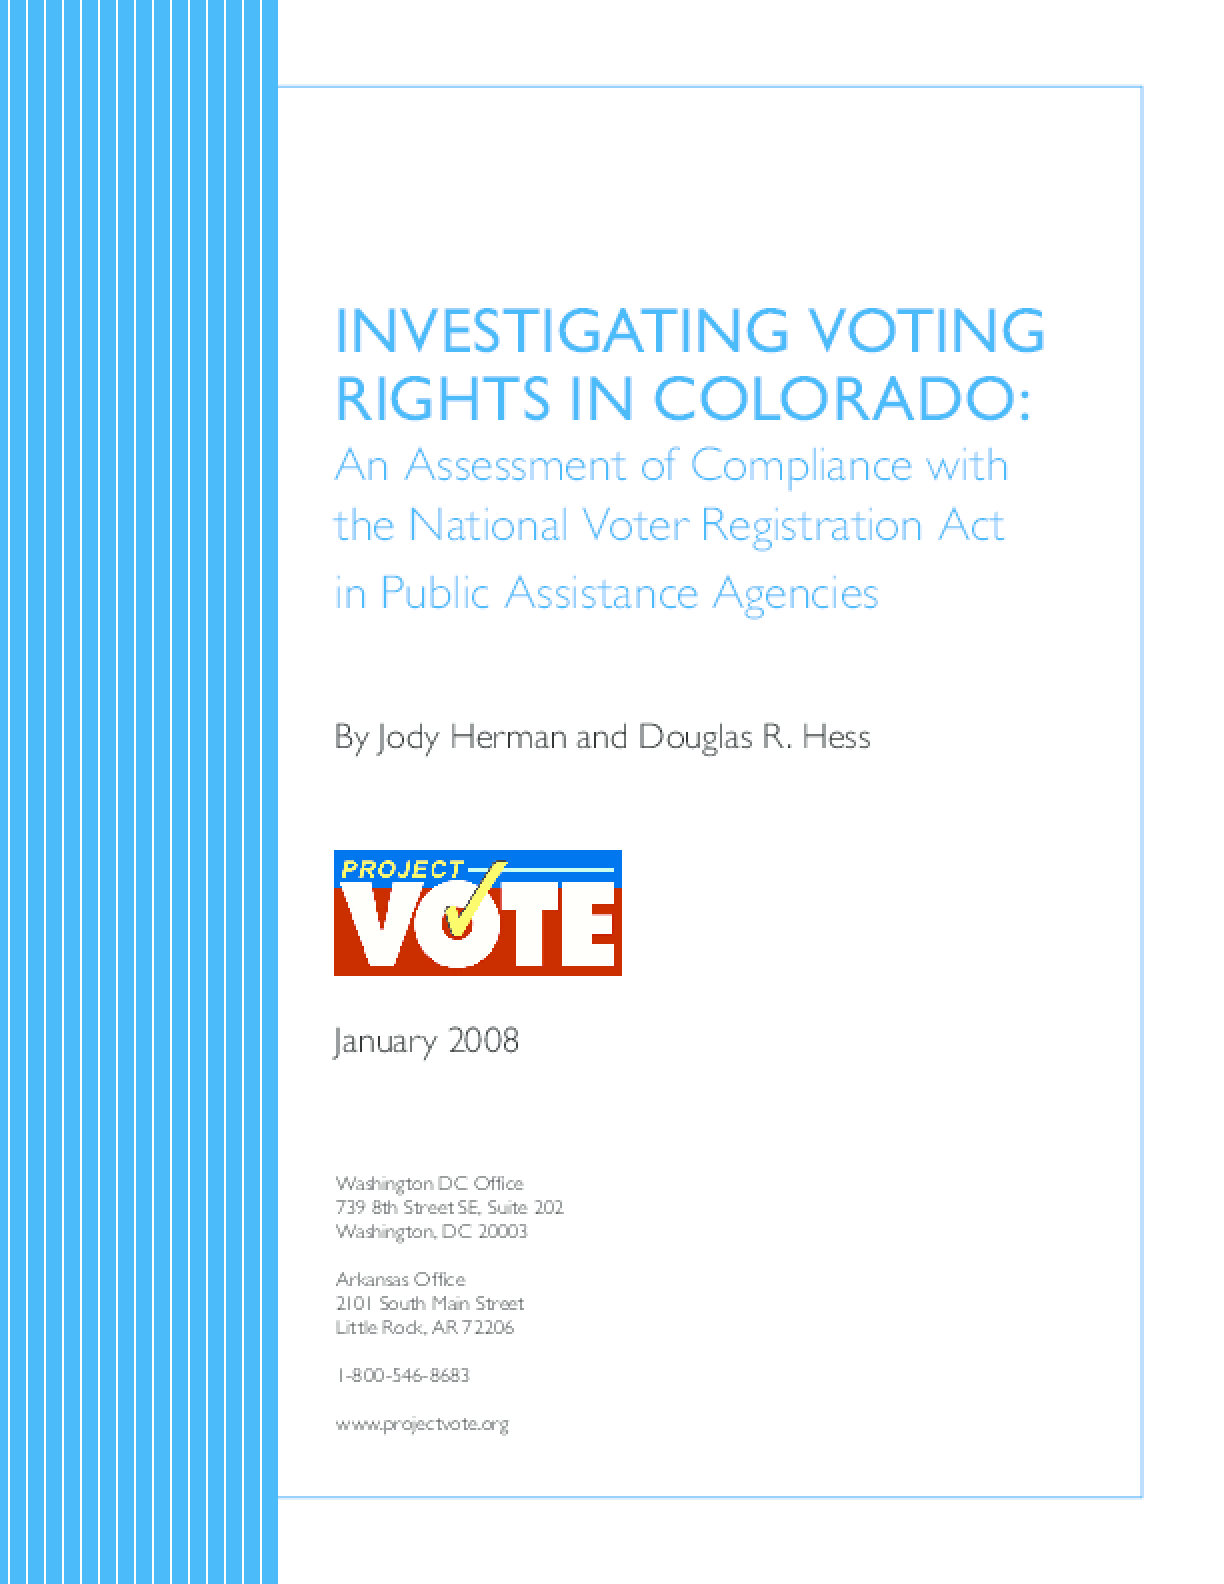 Investigating Voting Rights in Colorado: An Assessment of Compliance with the National Voter Registration Act in Public Assistance Agencies